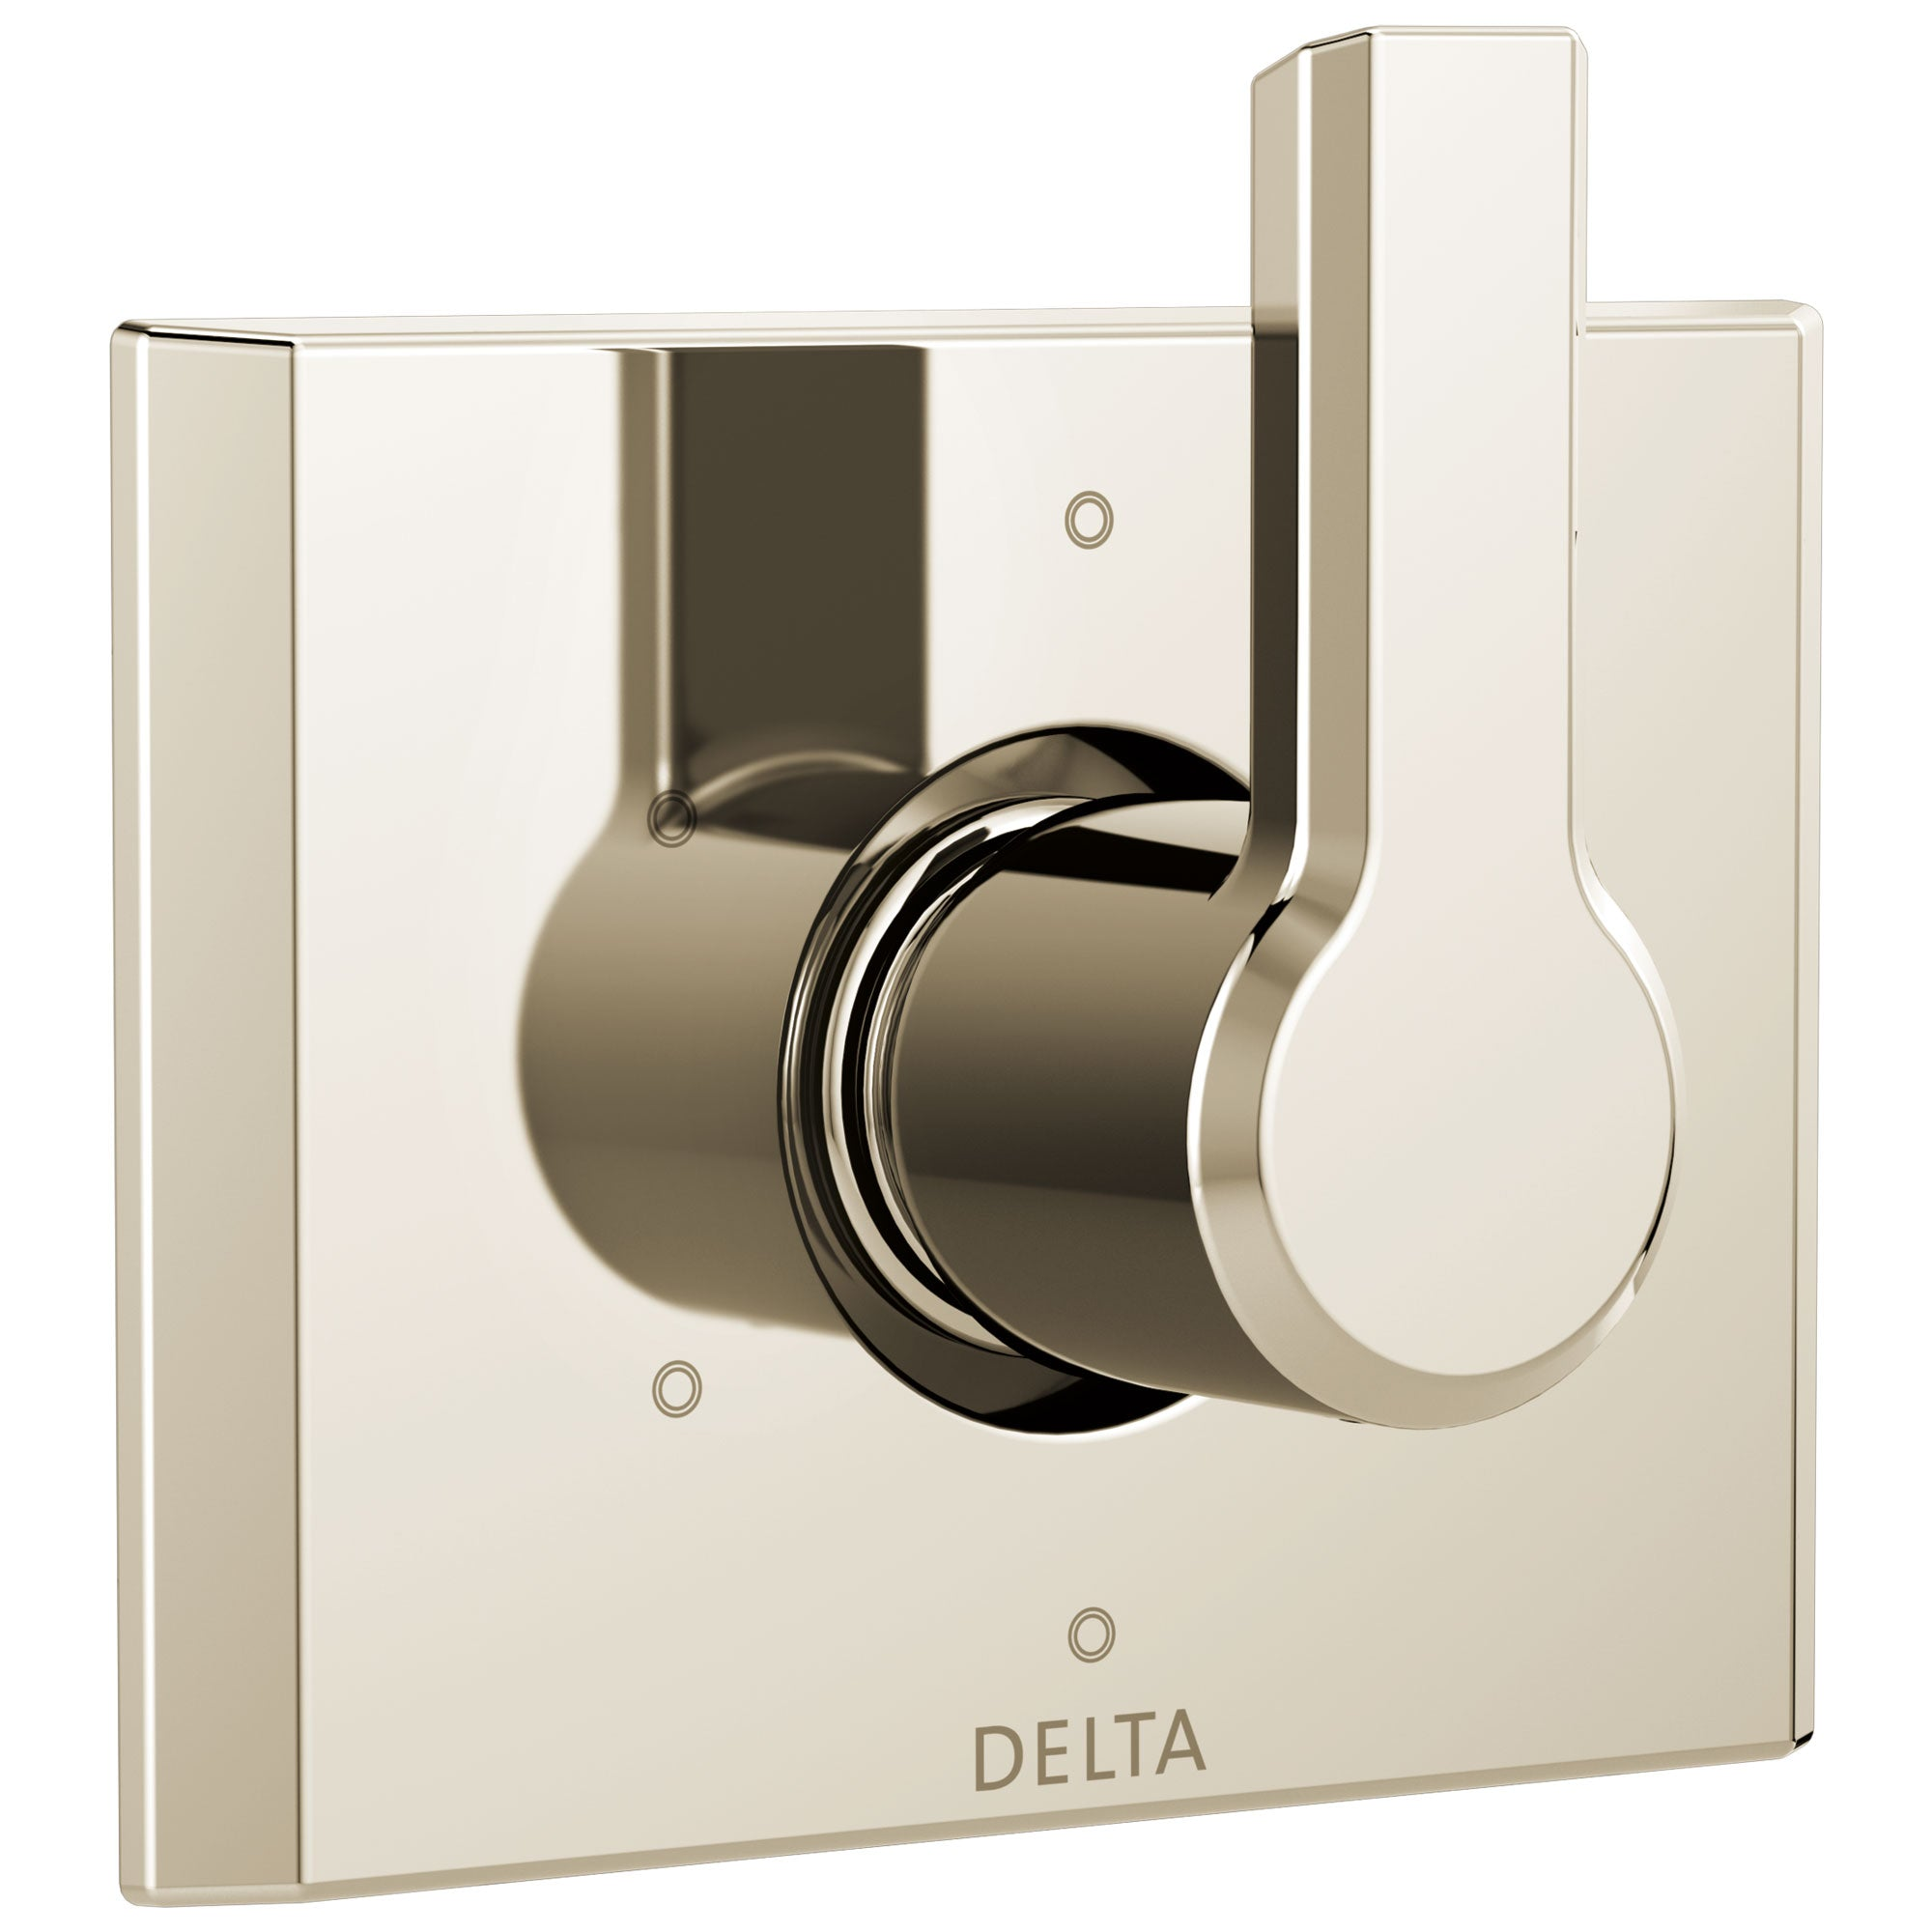 Delta Pivotal Modern Polished Nickel Finish 6-Setting 3 Outlet Port Shower System Diverter Includes Lever Handle and Rough-in Valve D3560V